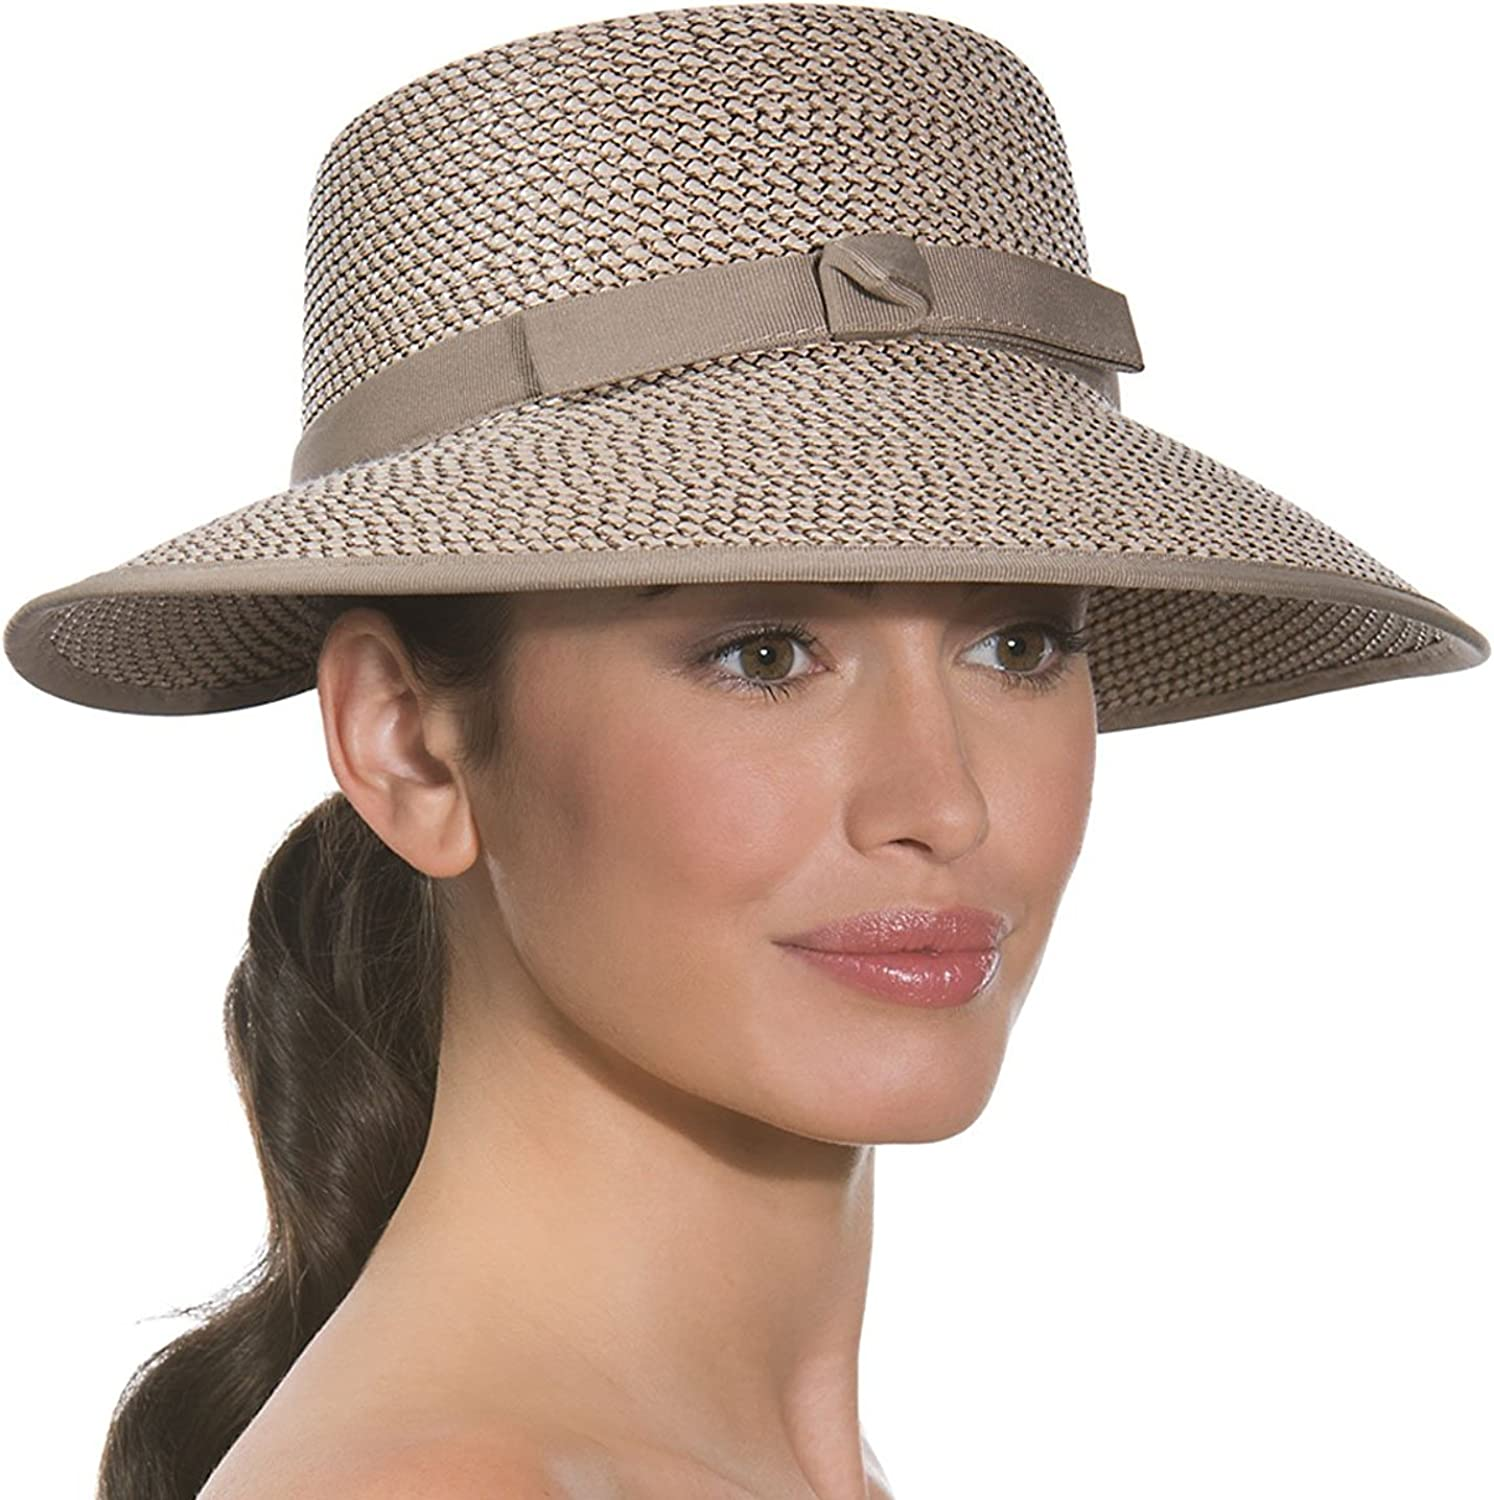 Eric Javits Luxury Fashion Designer Women's Headwear Hat  Squishee Cap  Bark